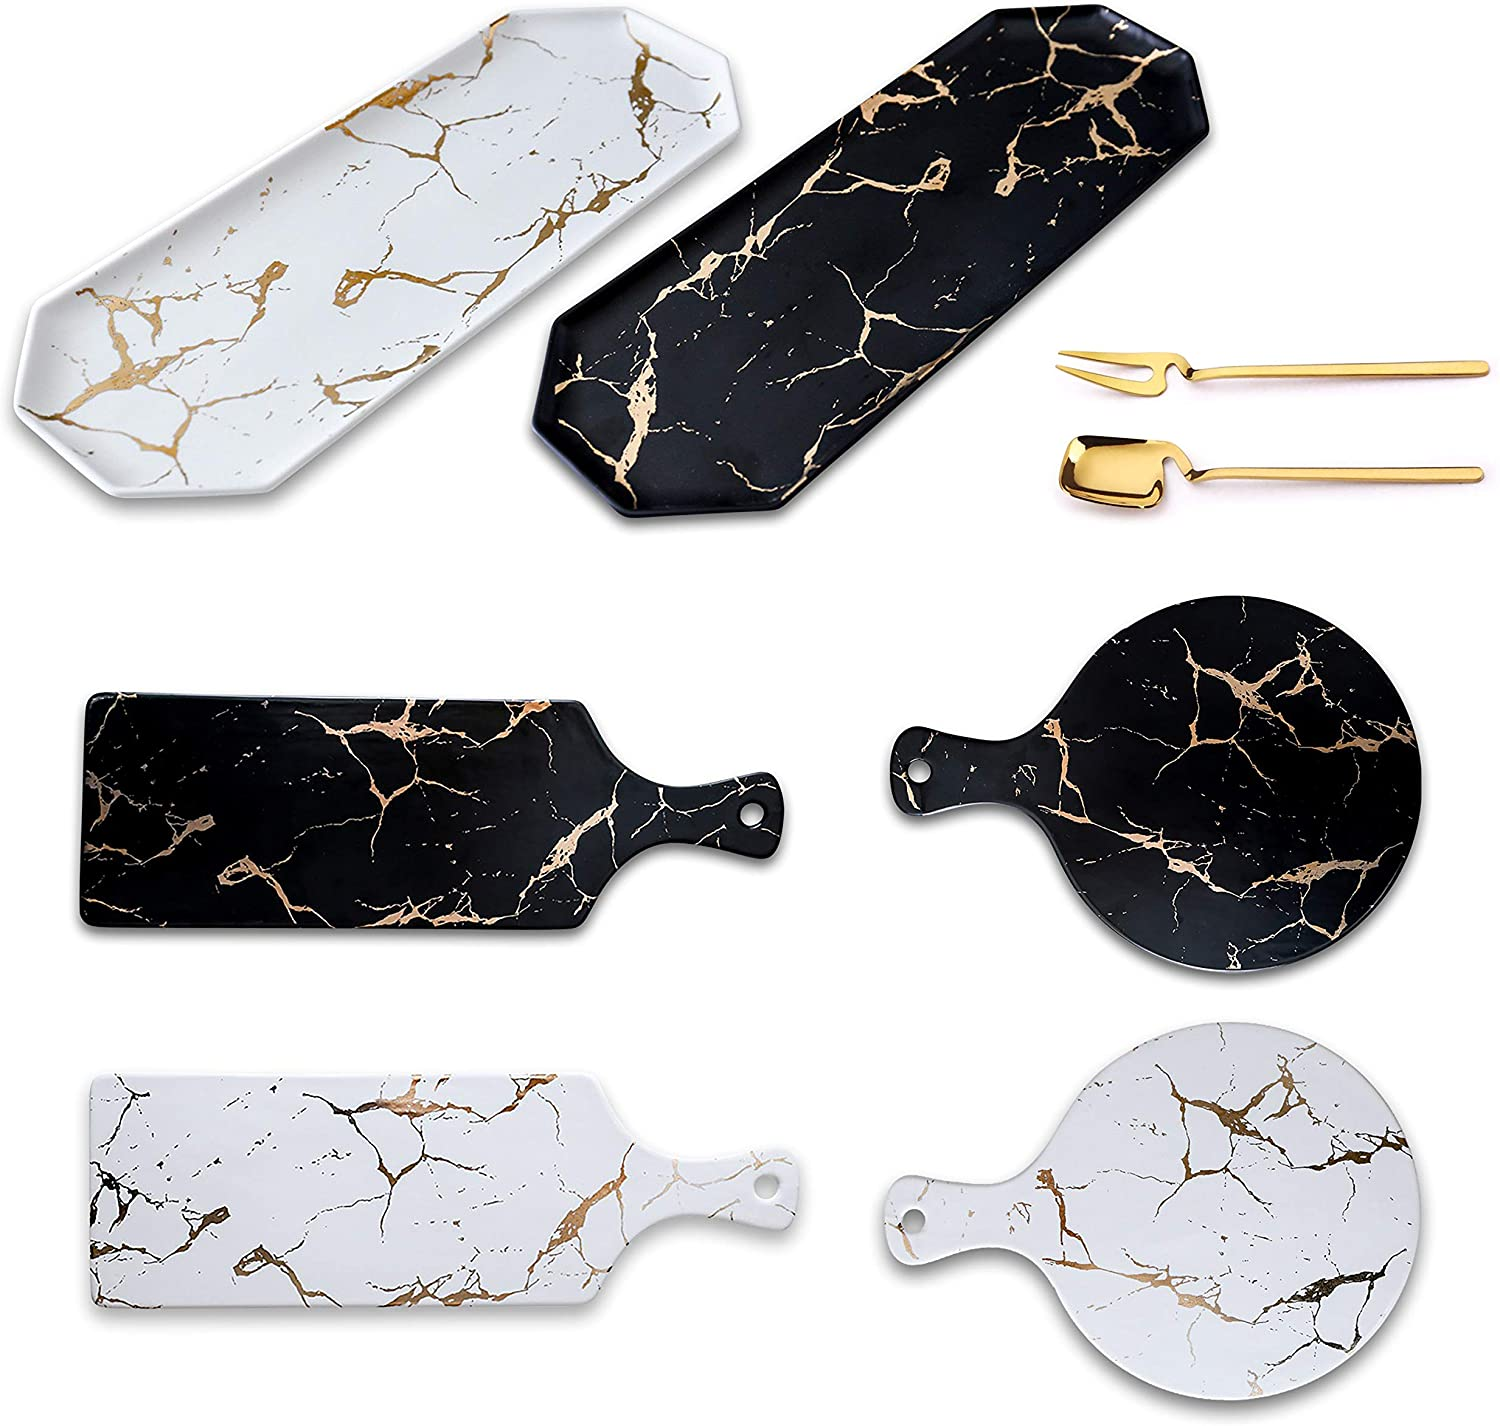 Ceramic Serving Platter Tray w/Gold Marble Pattern